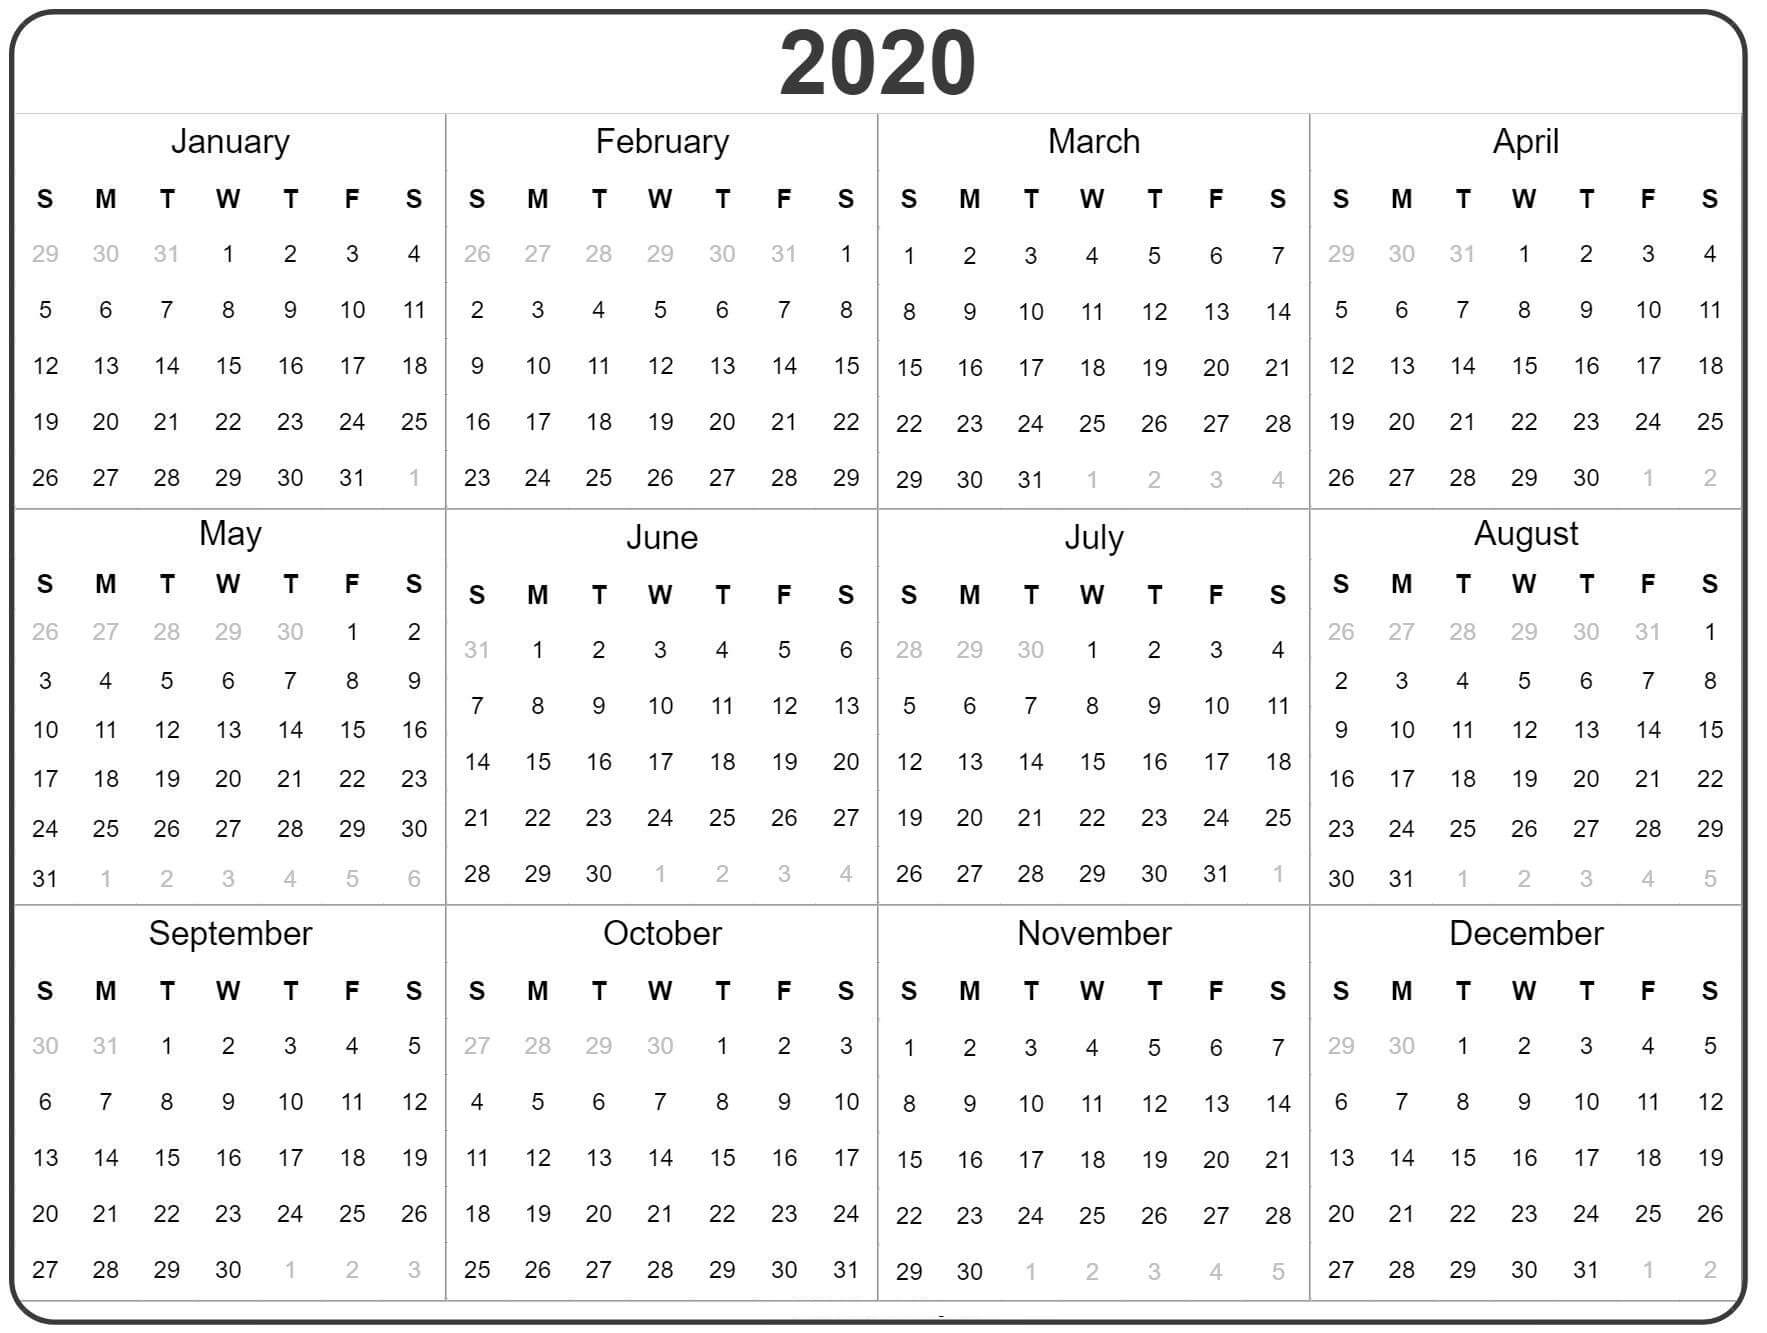 Free Yearly Calendar 2020 With Notes - 2019 Calendars For throughout 2020 Whole Year At A Glance